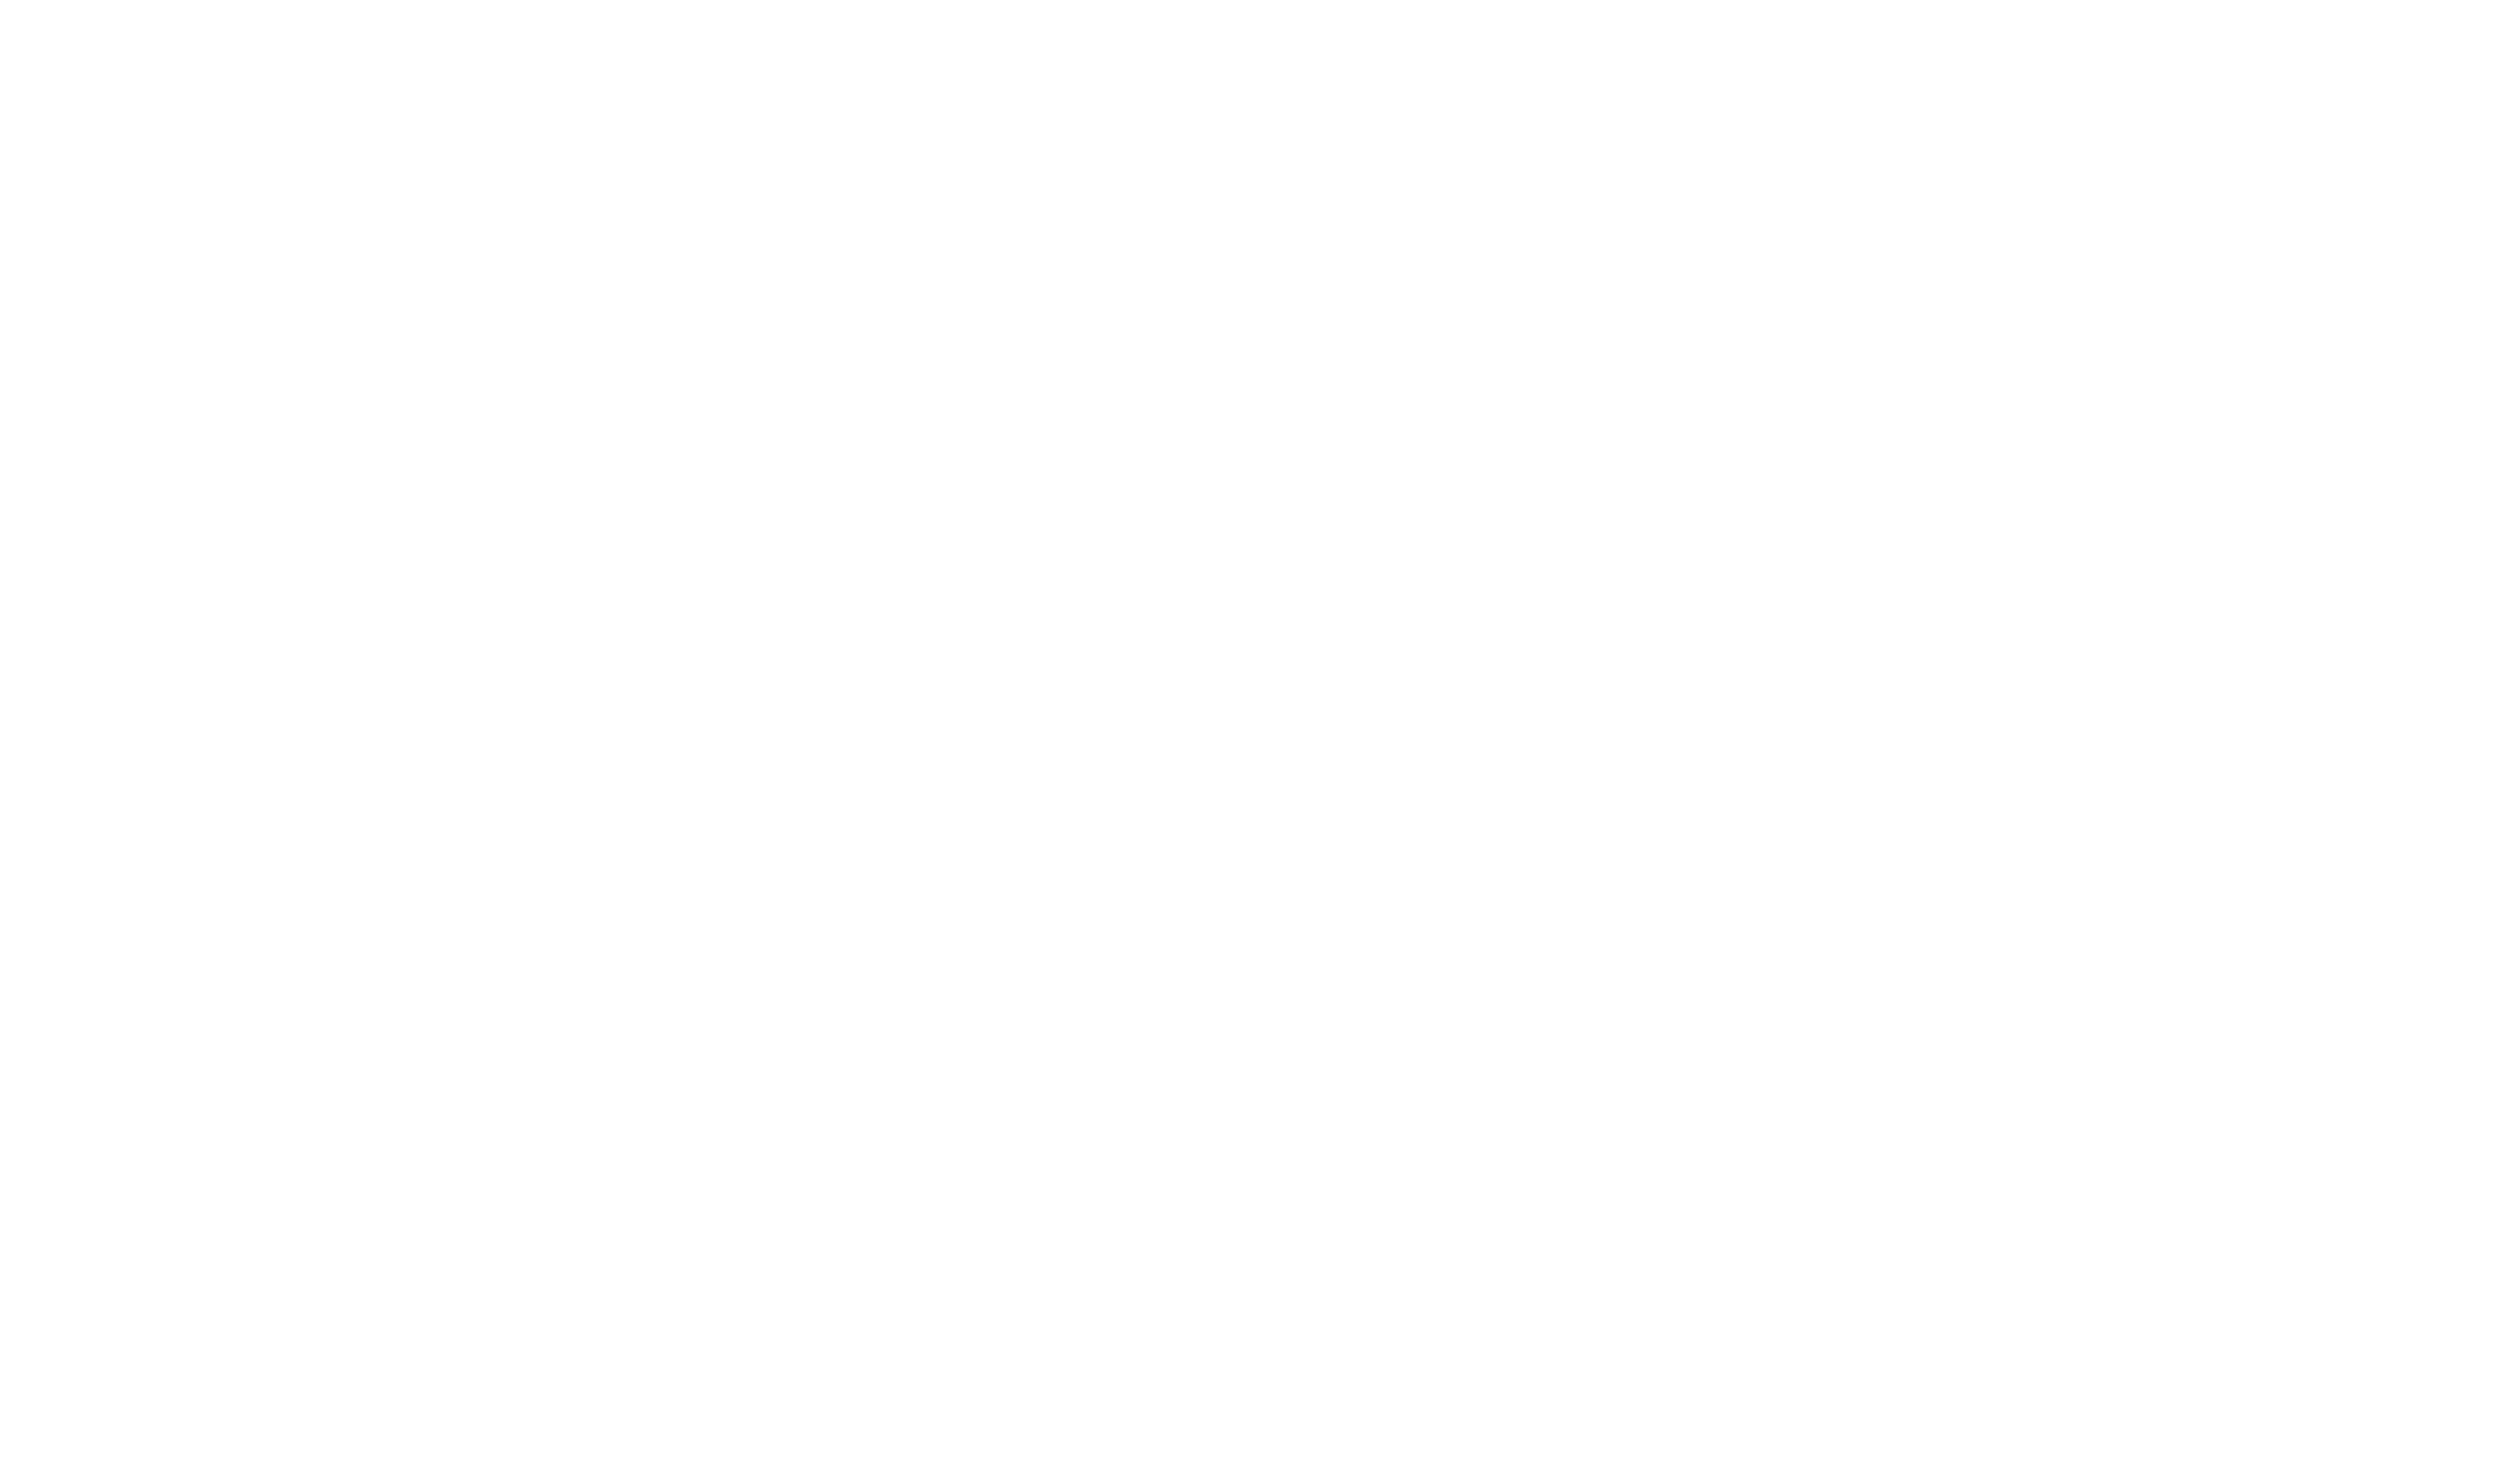 Experienced Artisans Traditional Methods